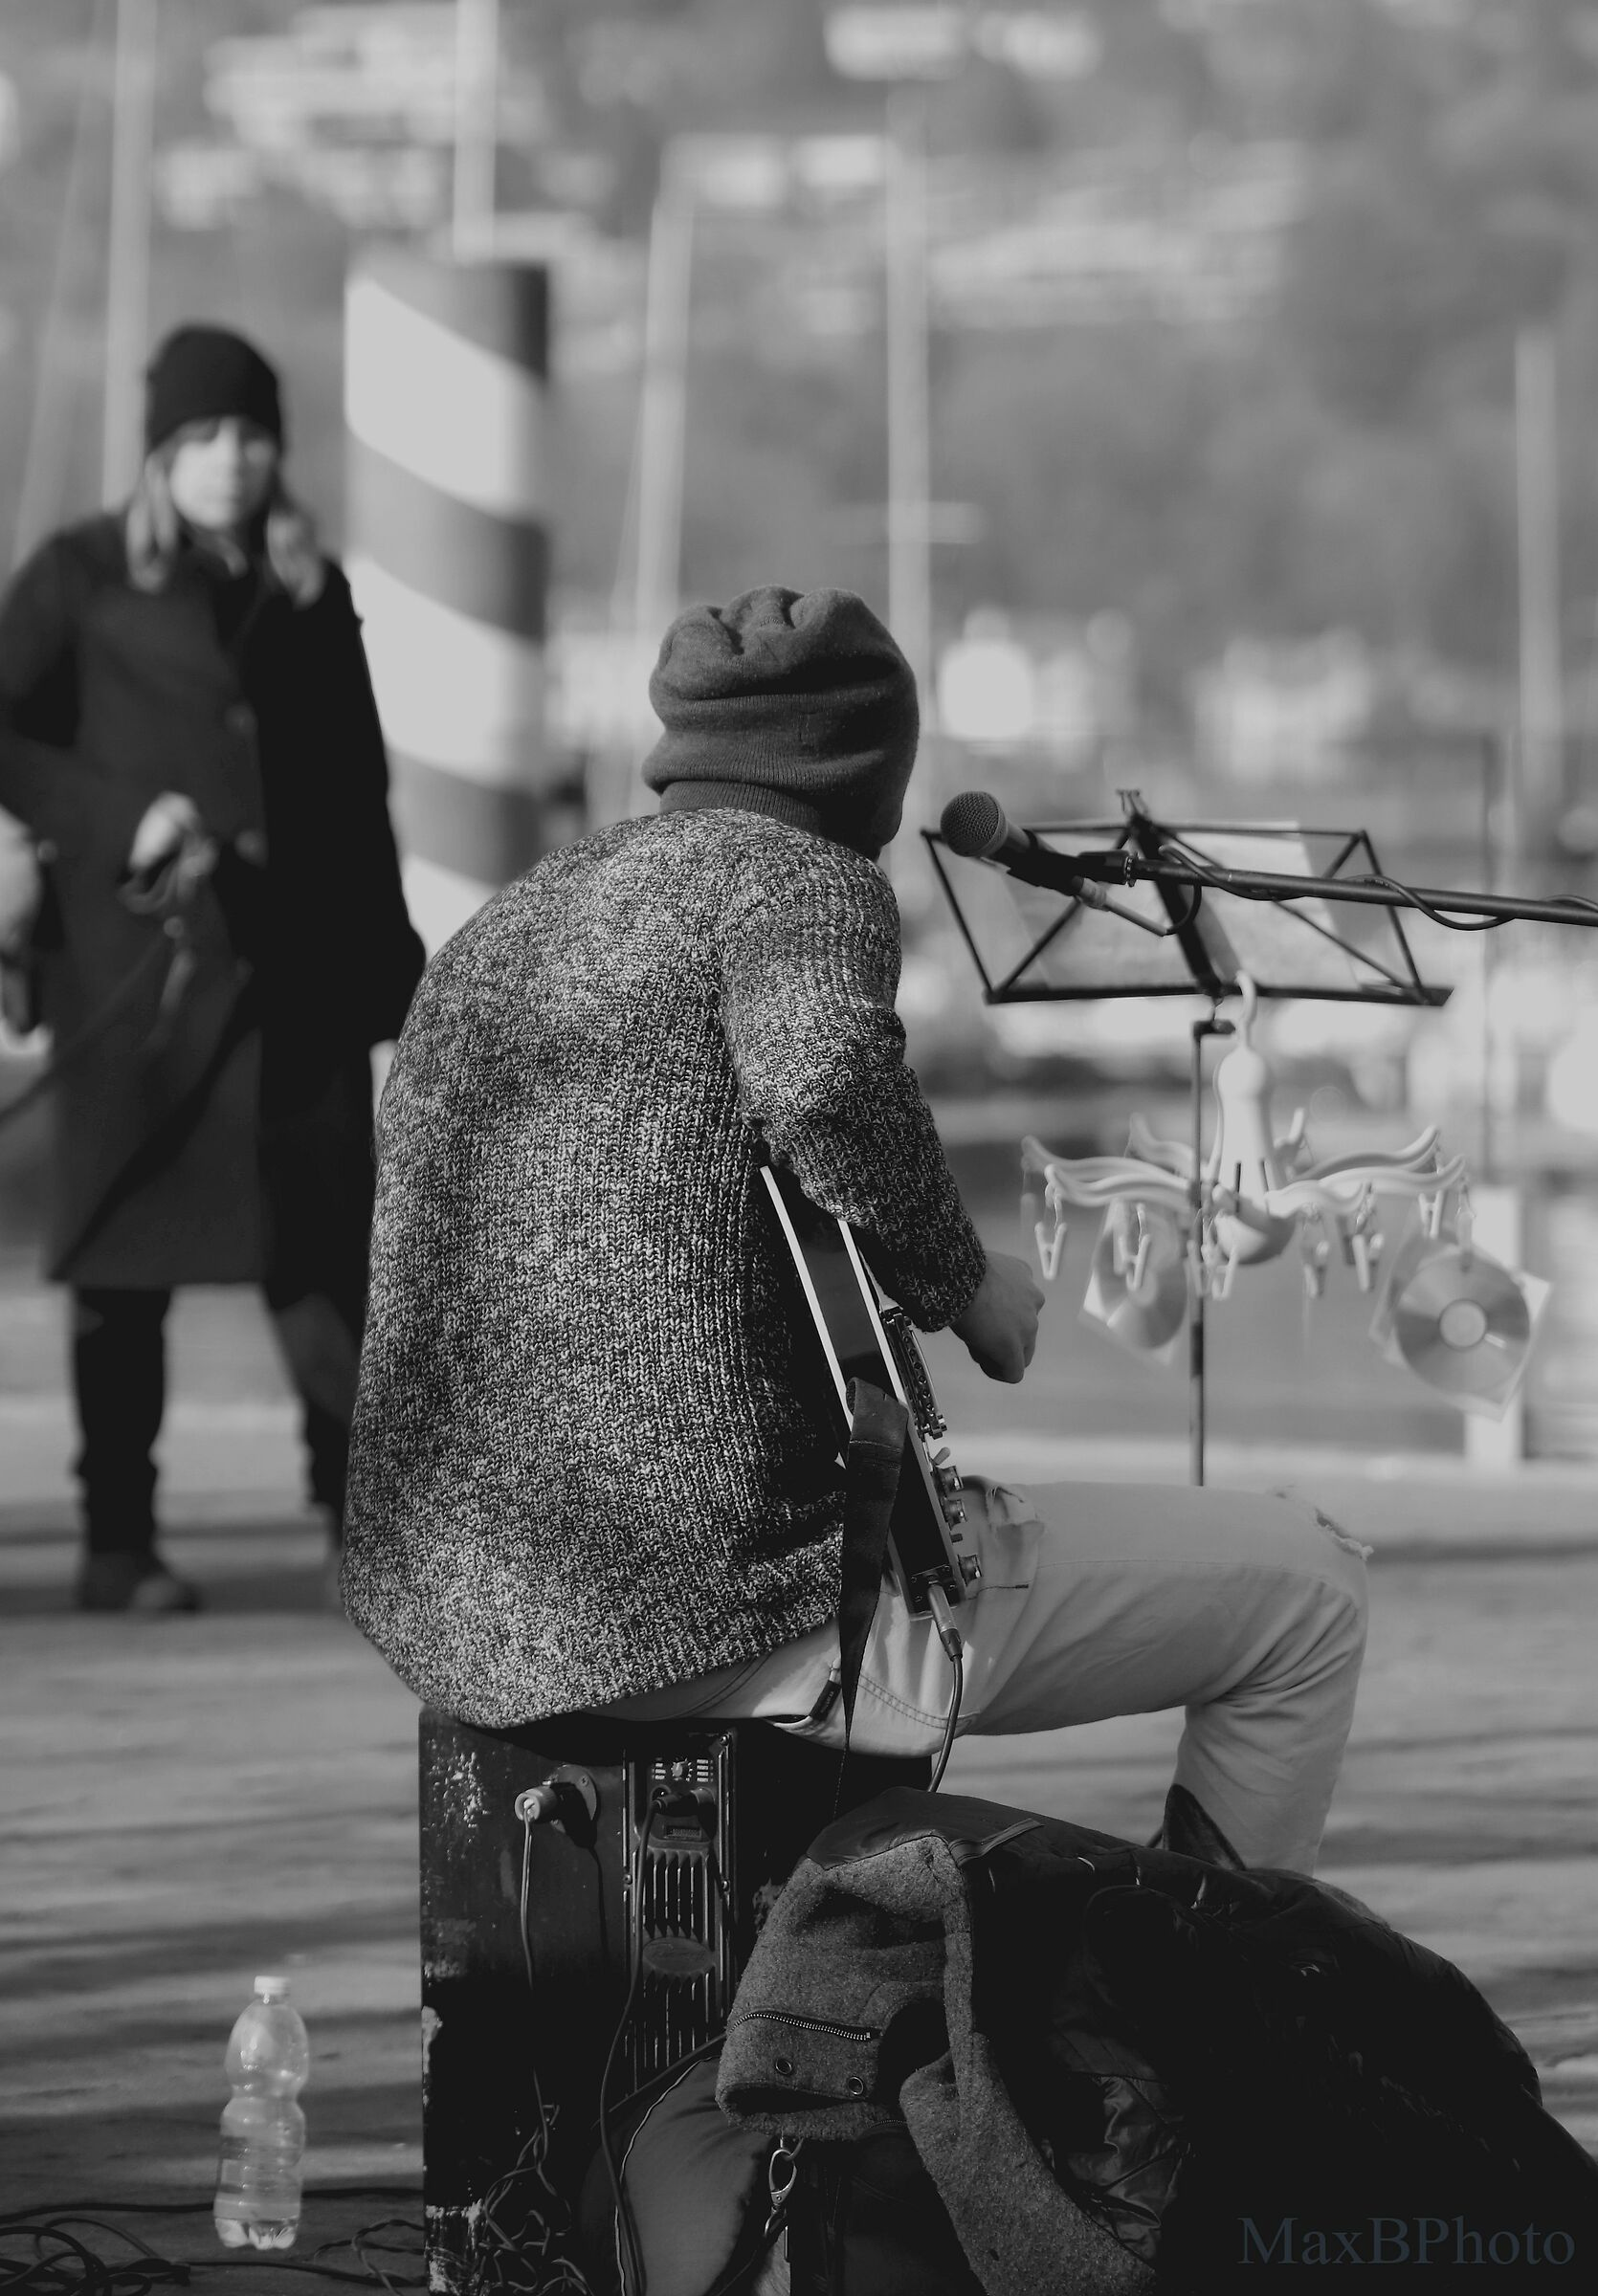 Music in the street...